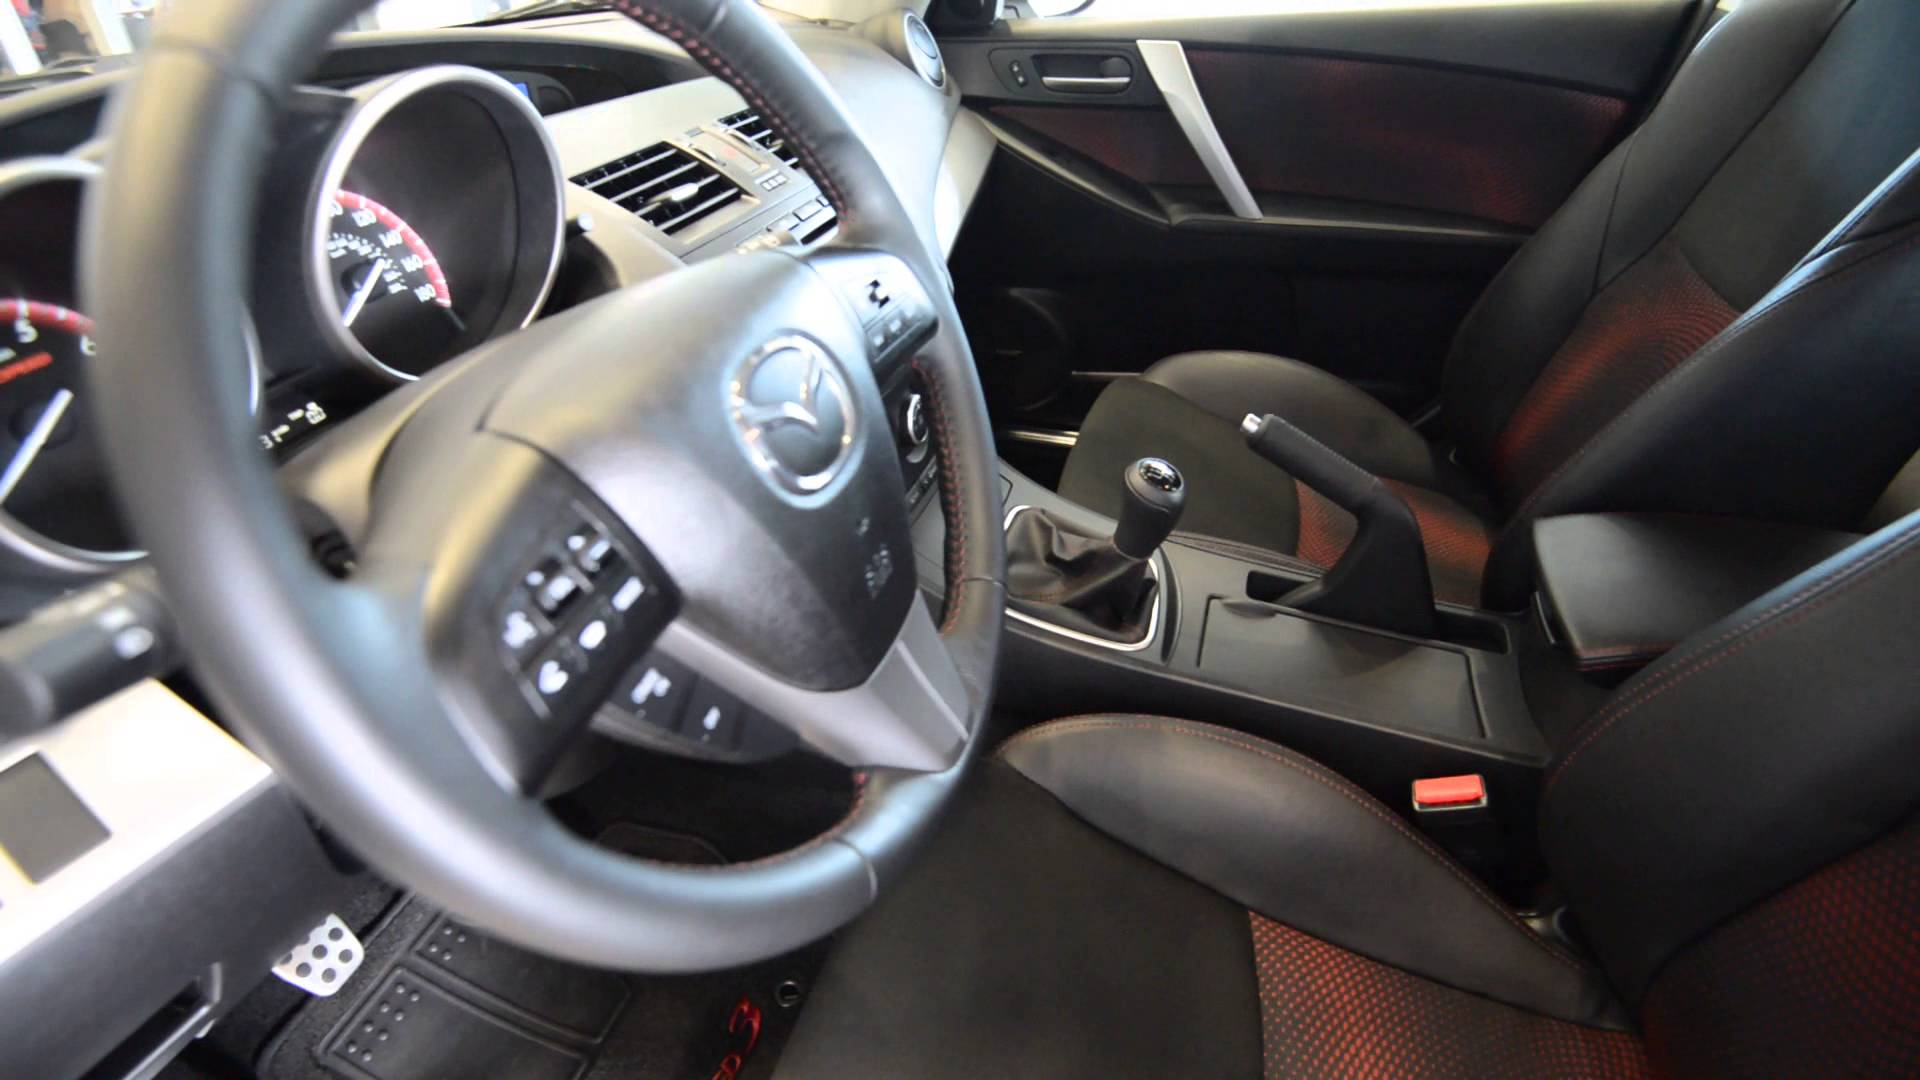 2012 mazdaspeed3 touring tech stk sa for sale trend motors used car center rockaway nj